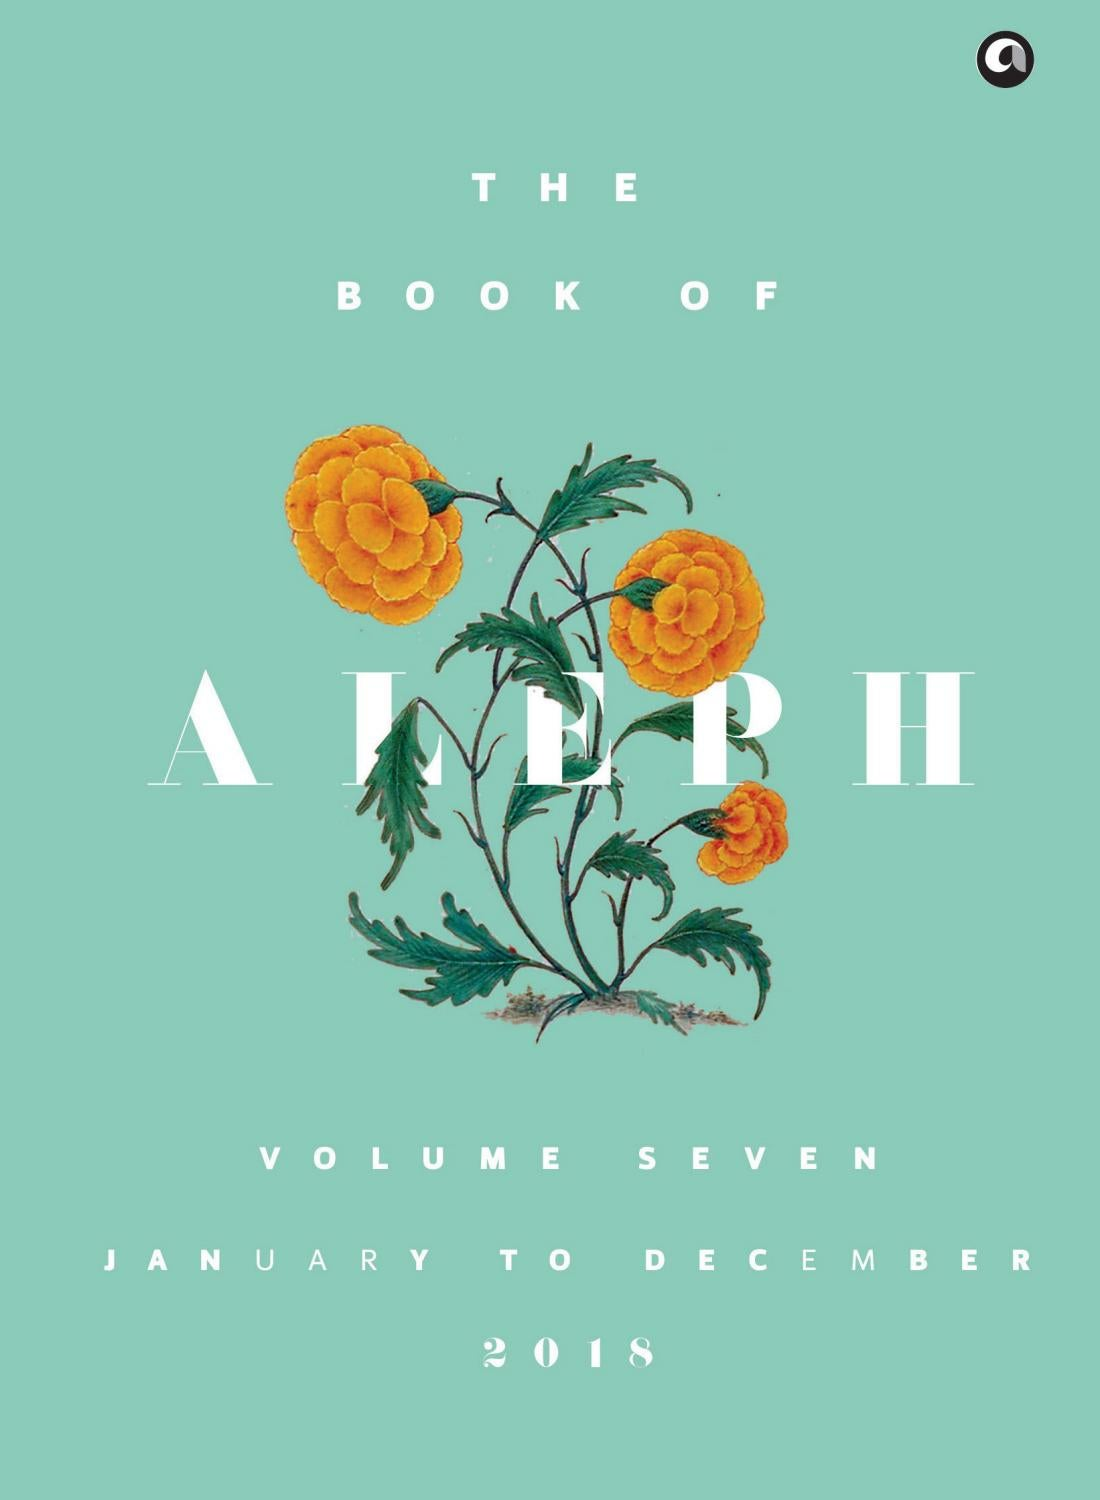 The Book of Aleph (Volume 7) by Aleph Book Company - issuu